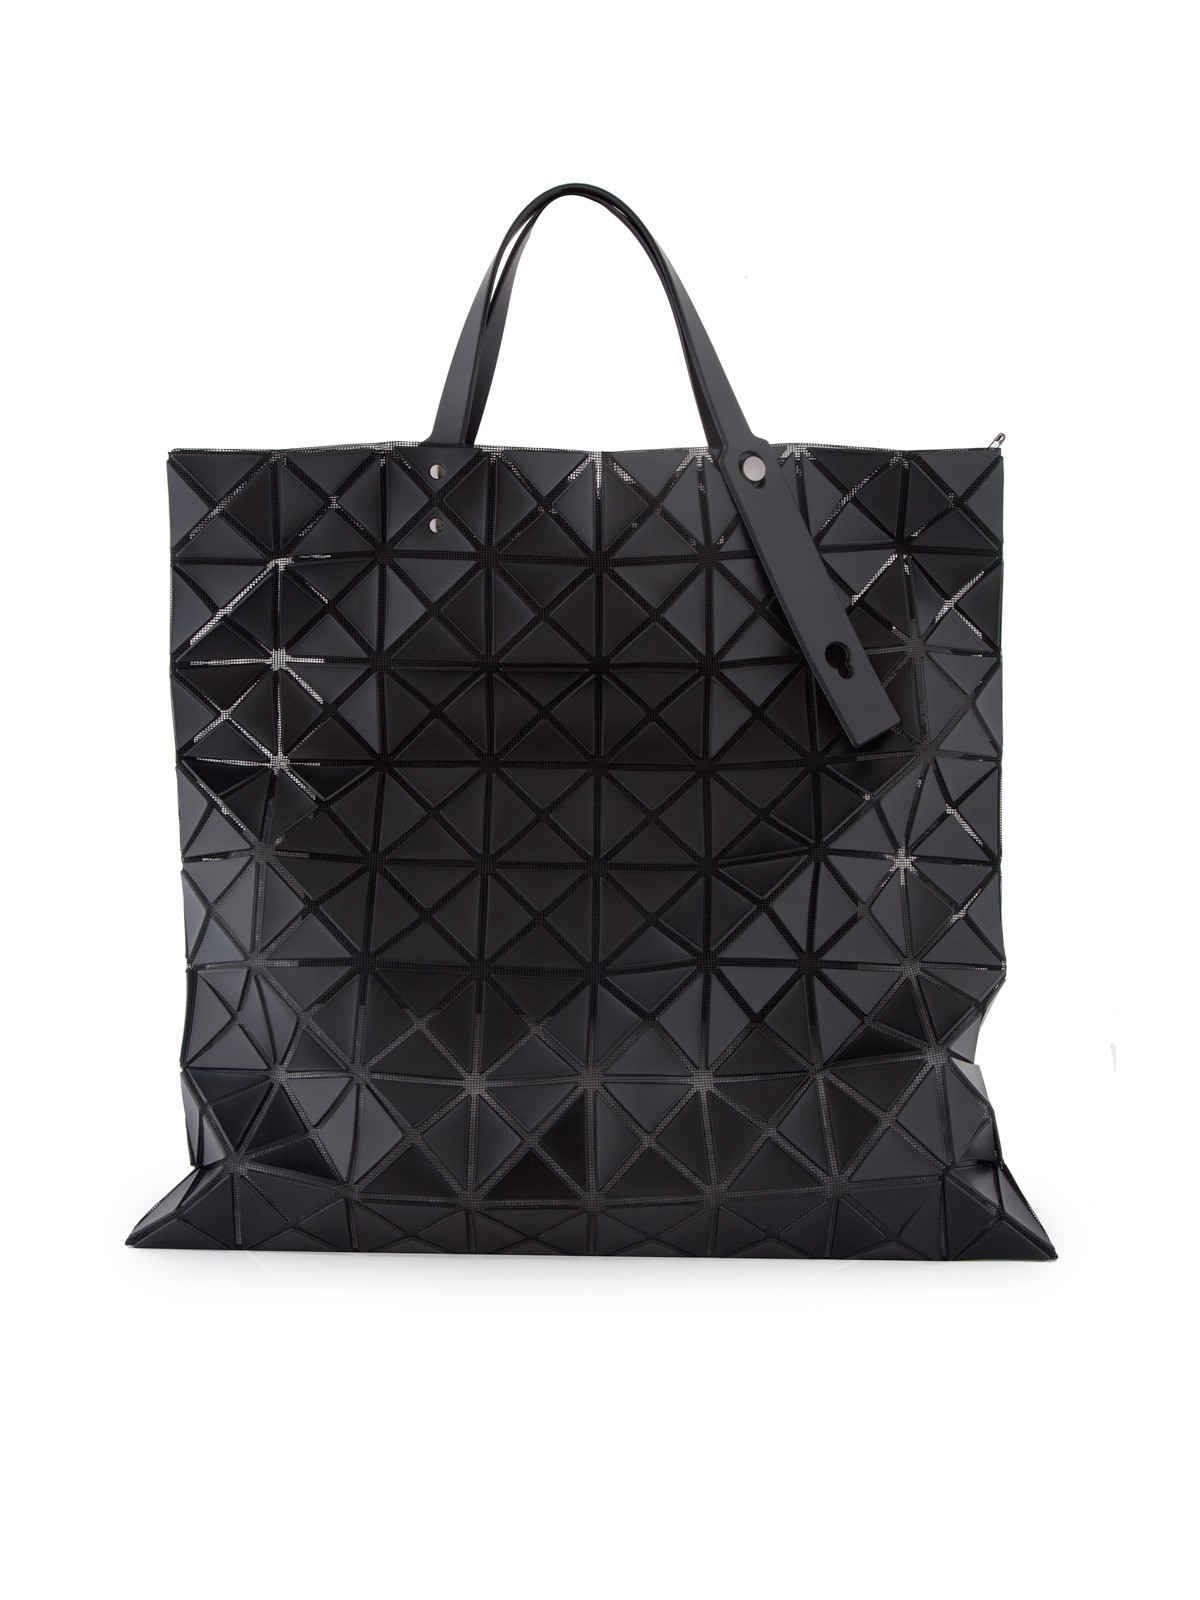 5b20492a4567 bao bao issey miyake PRISM TOTE BAG available on montiboutique.com ...